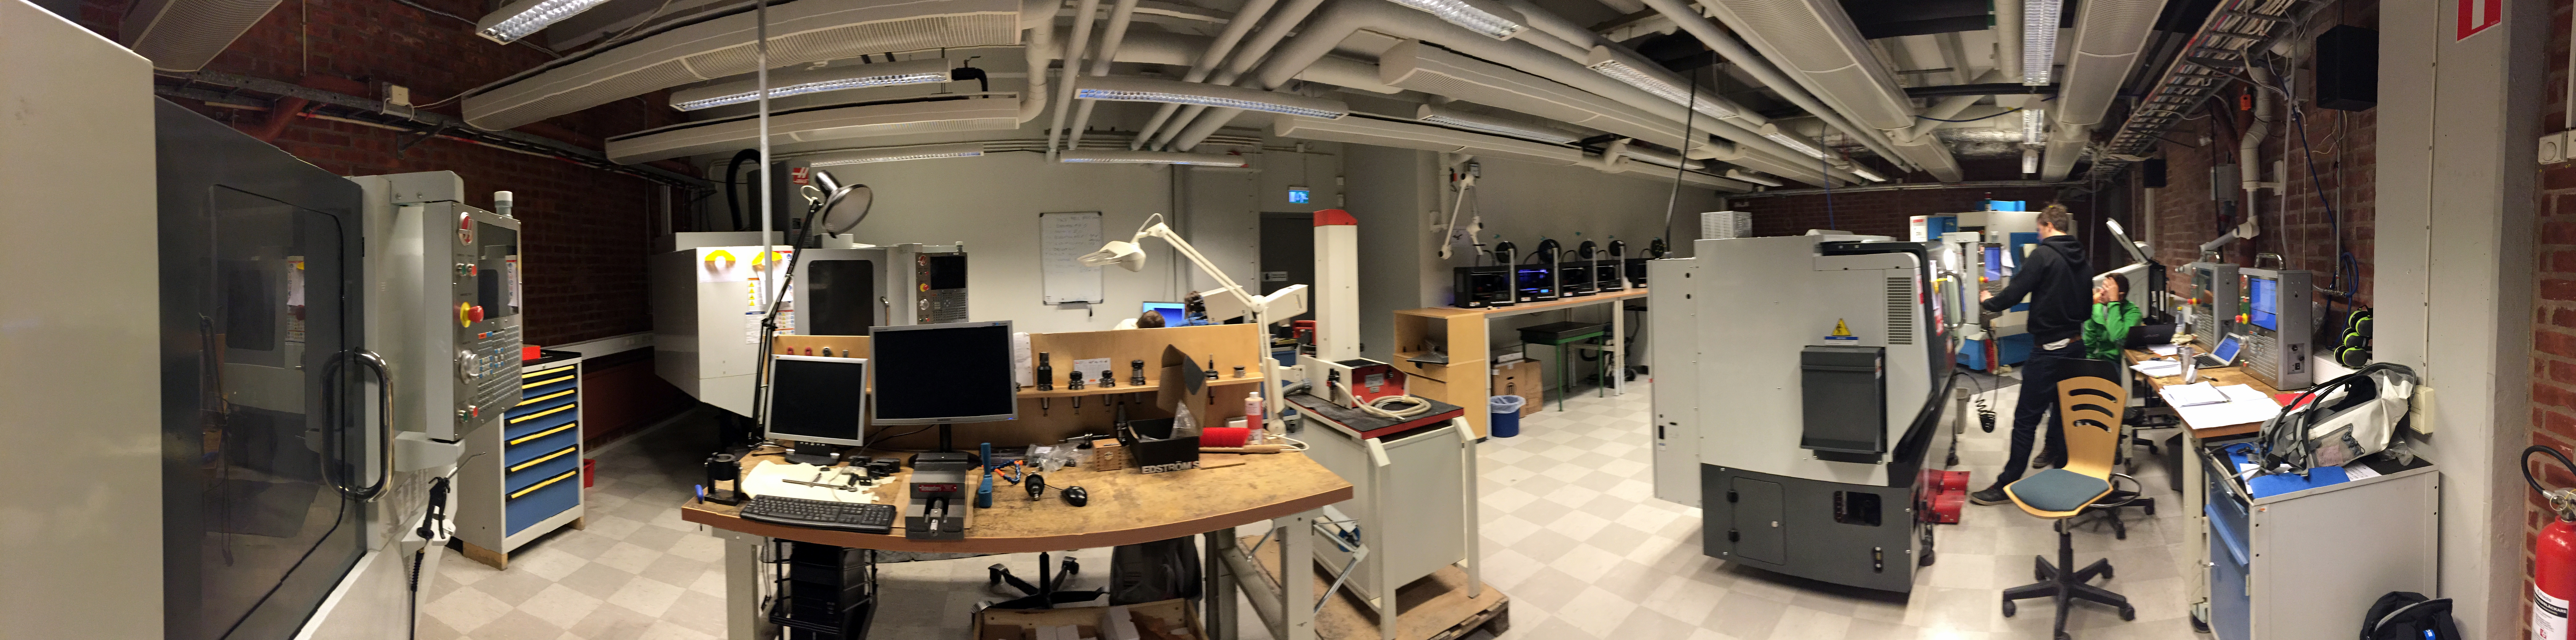 CNC machine, max  feed, 5000 rpm, no big deal | Study in Sweden: the